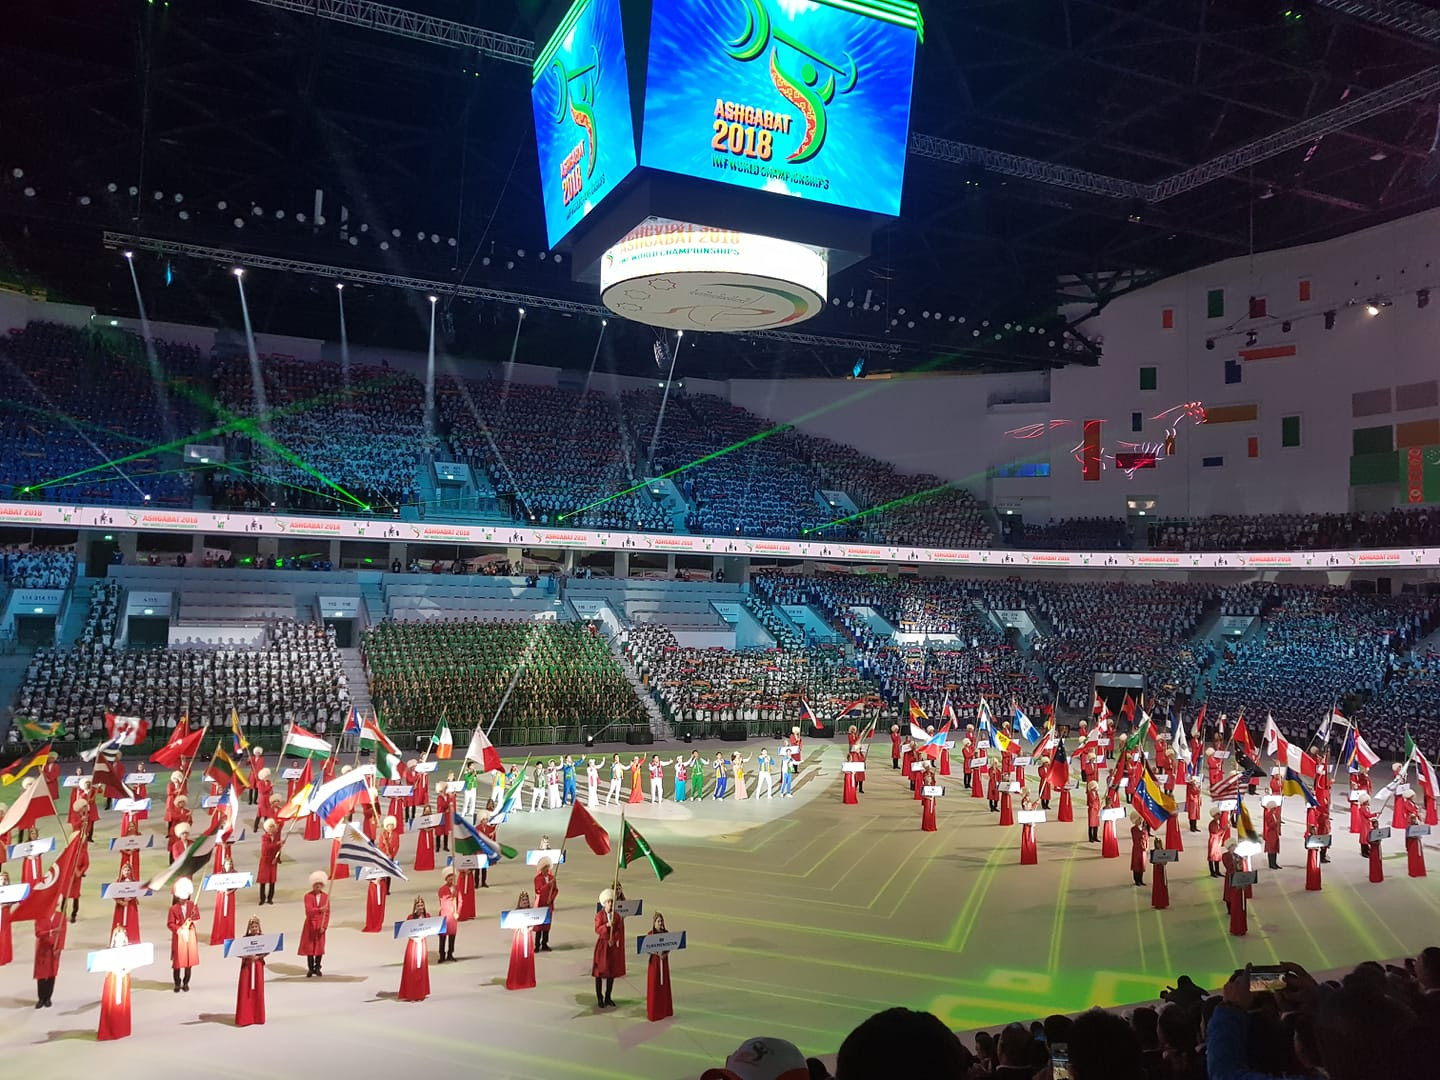 insidethegames is reporting LIVE from the World Weightlifting Championships in Ashgabat